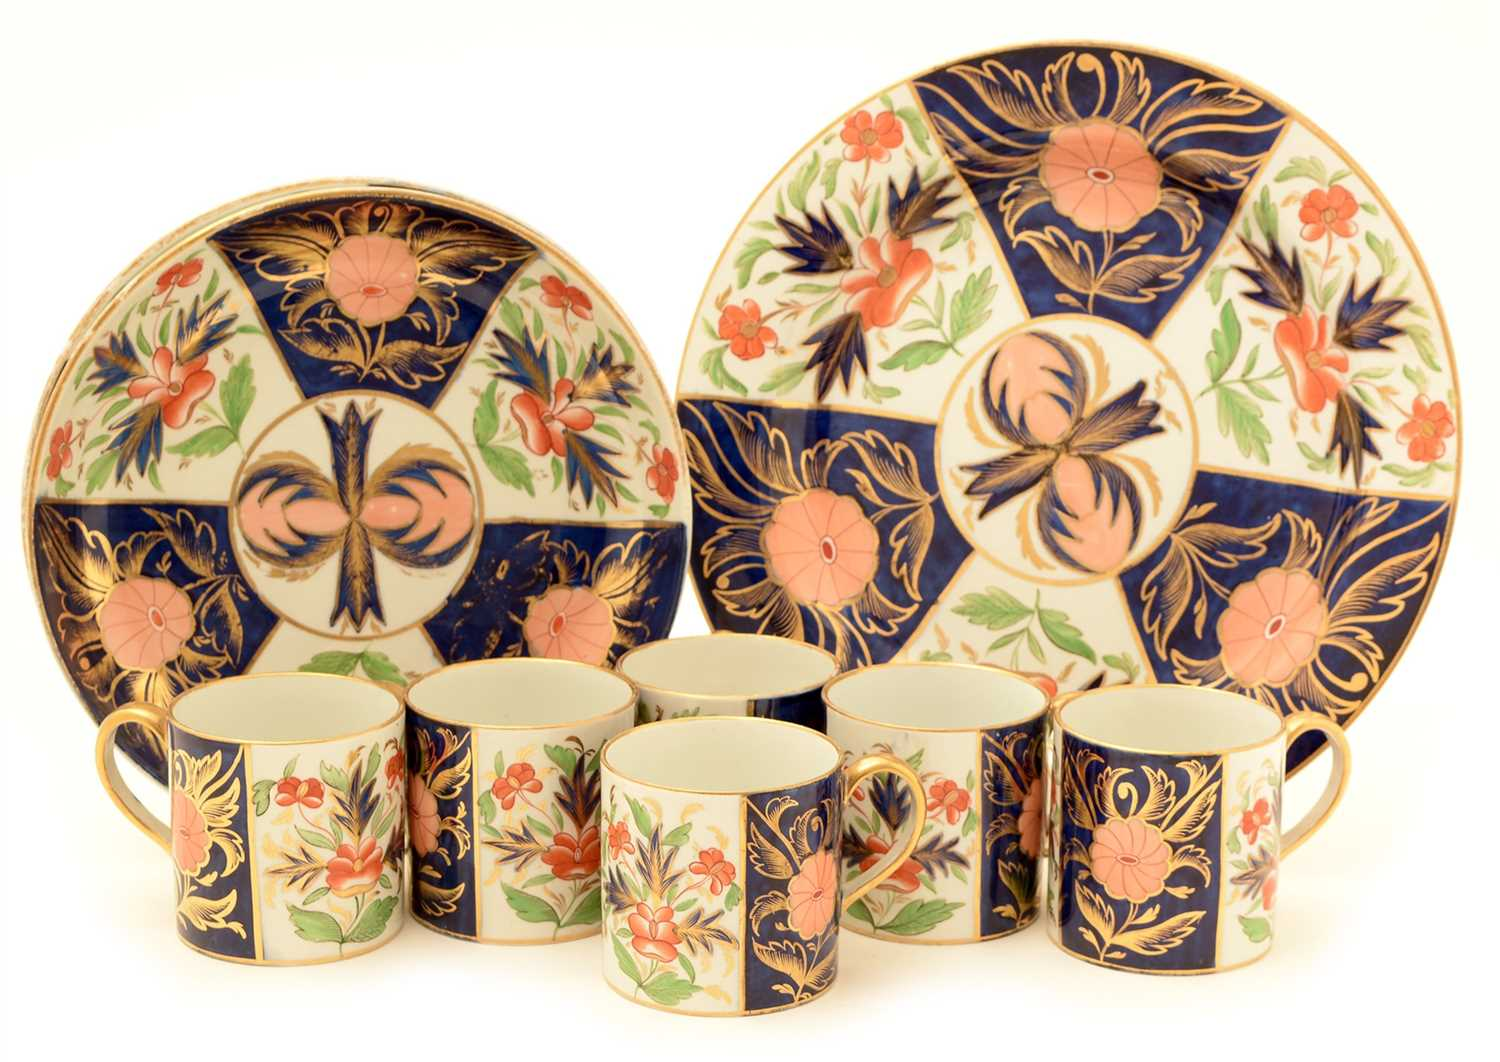 Lot 100 - An early 19th Century Wedgwood Pearlware part service.